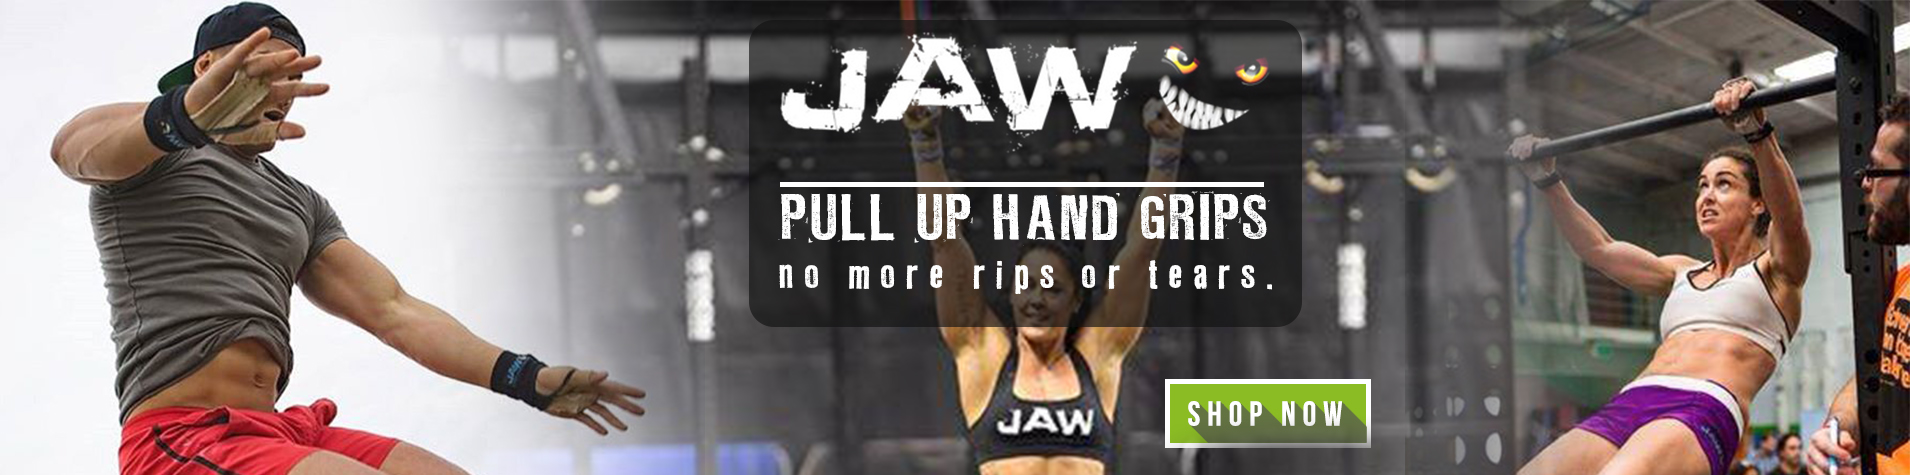 Jaw Hand Grips